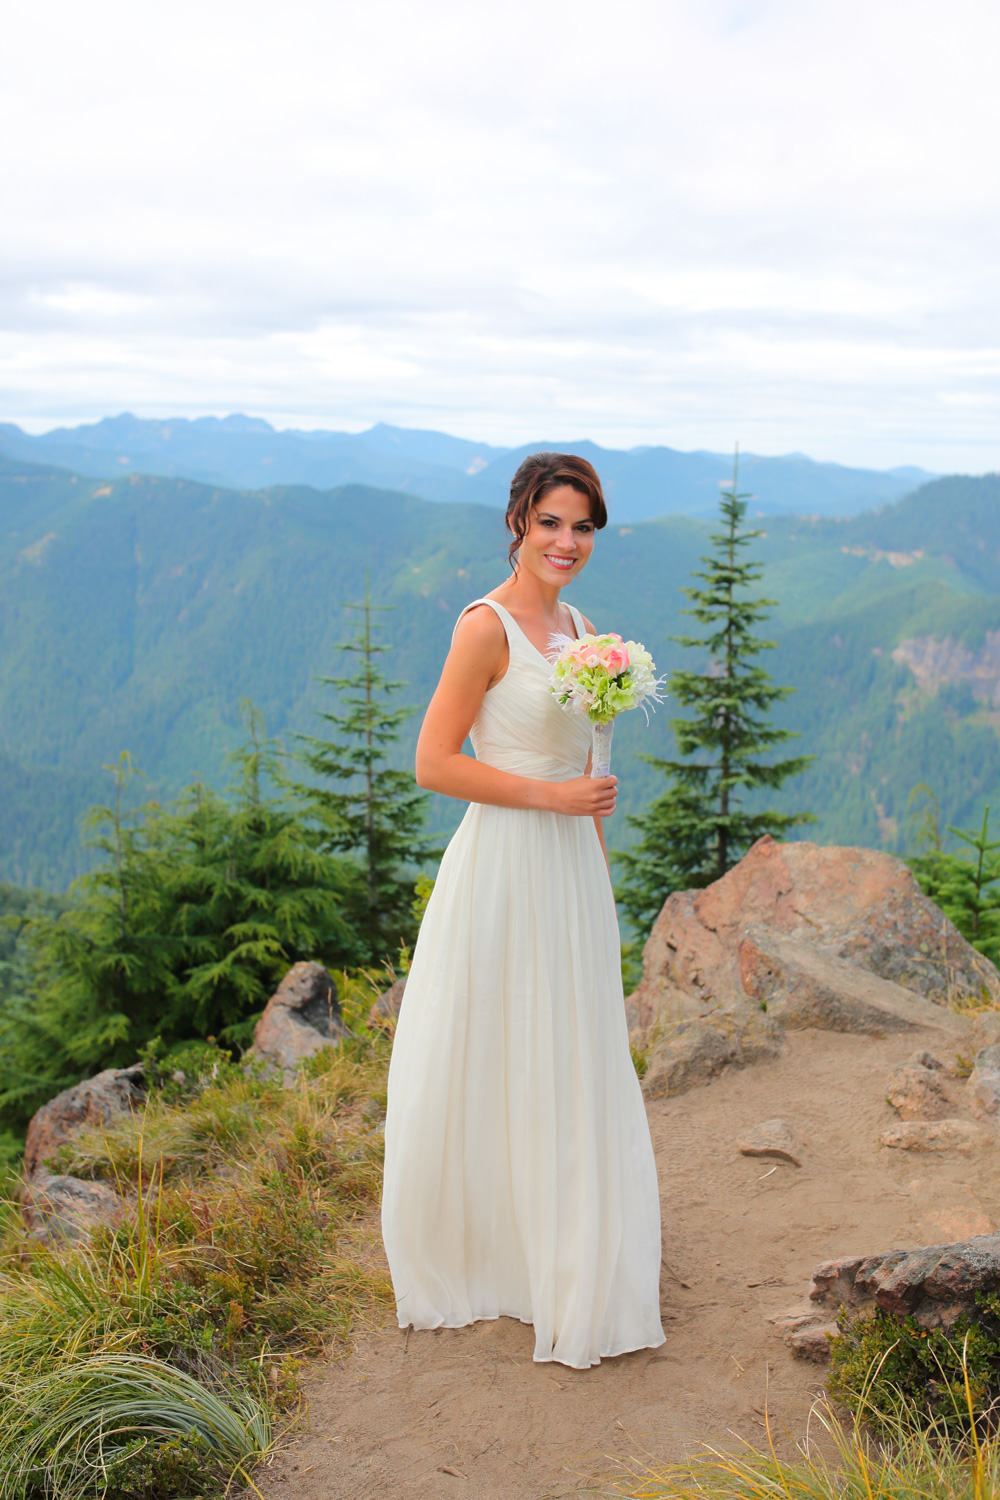 Wedding Photos Mt Rainer Suntop Fire Lookout Washington08.jpg